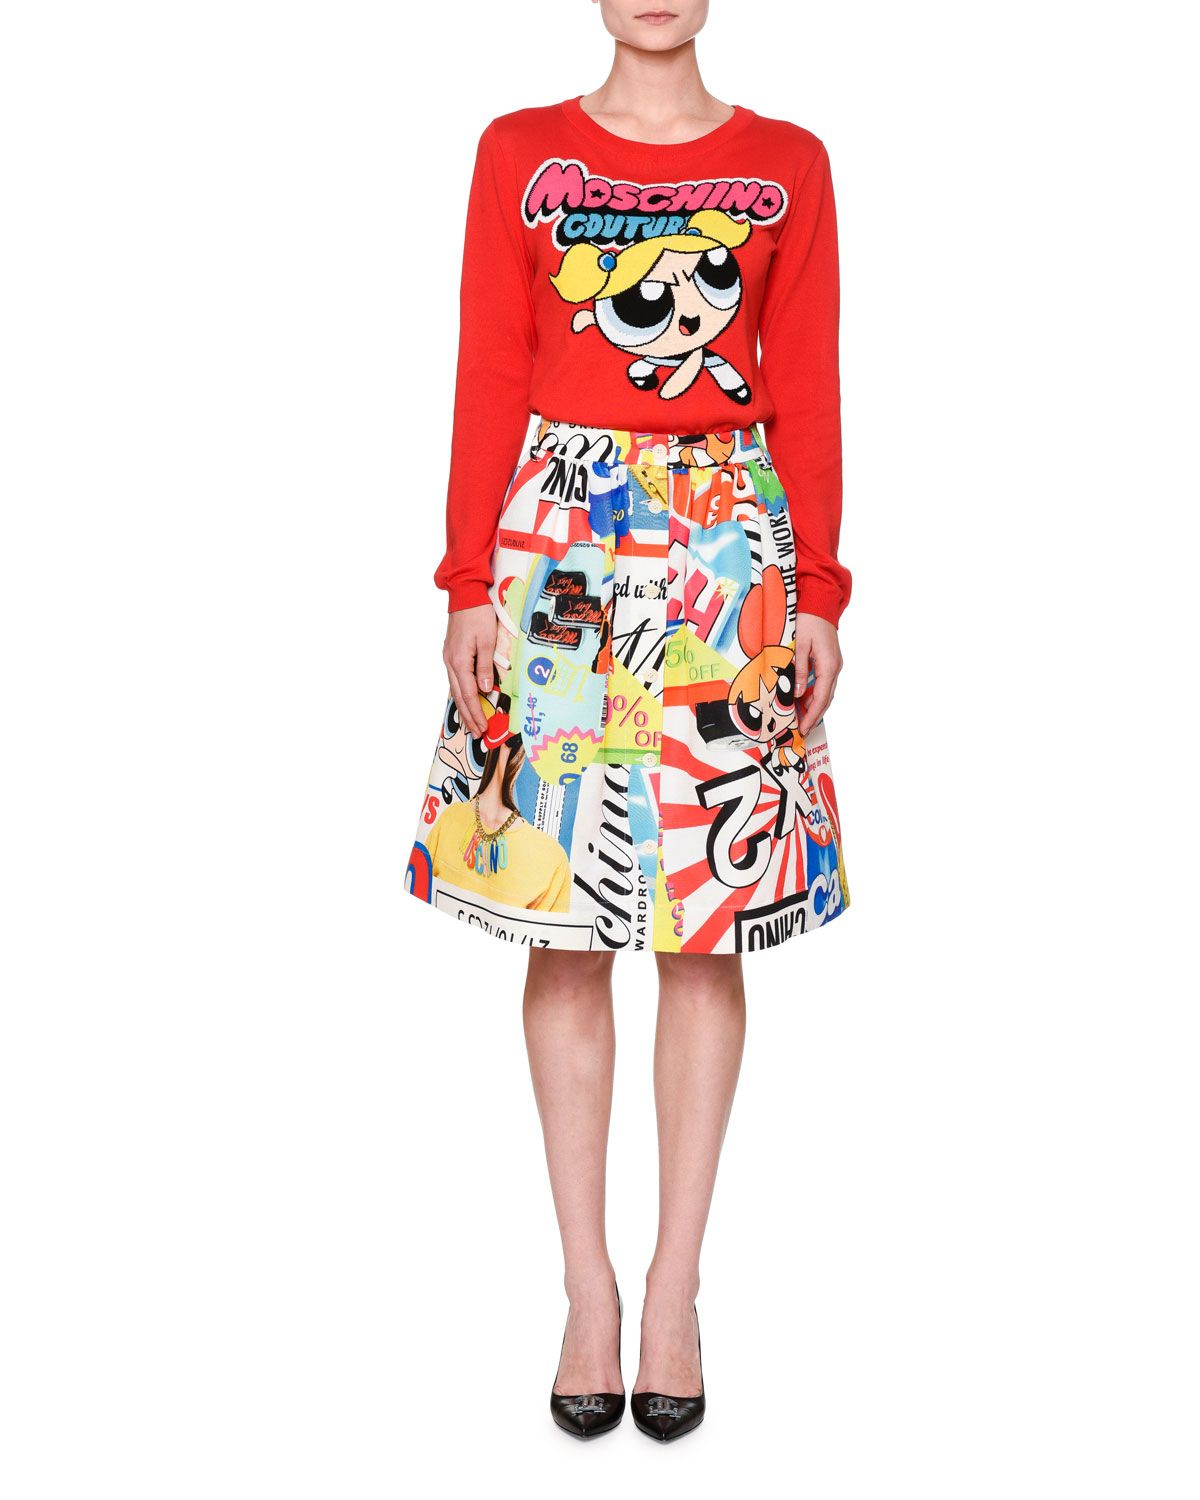 fdd608d174 Moschino Powerpuff Girls Sweater & A-Line Skirt | What We Wear ...